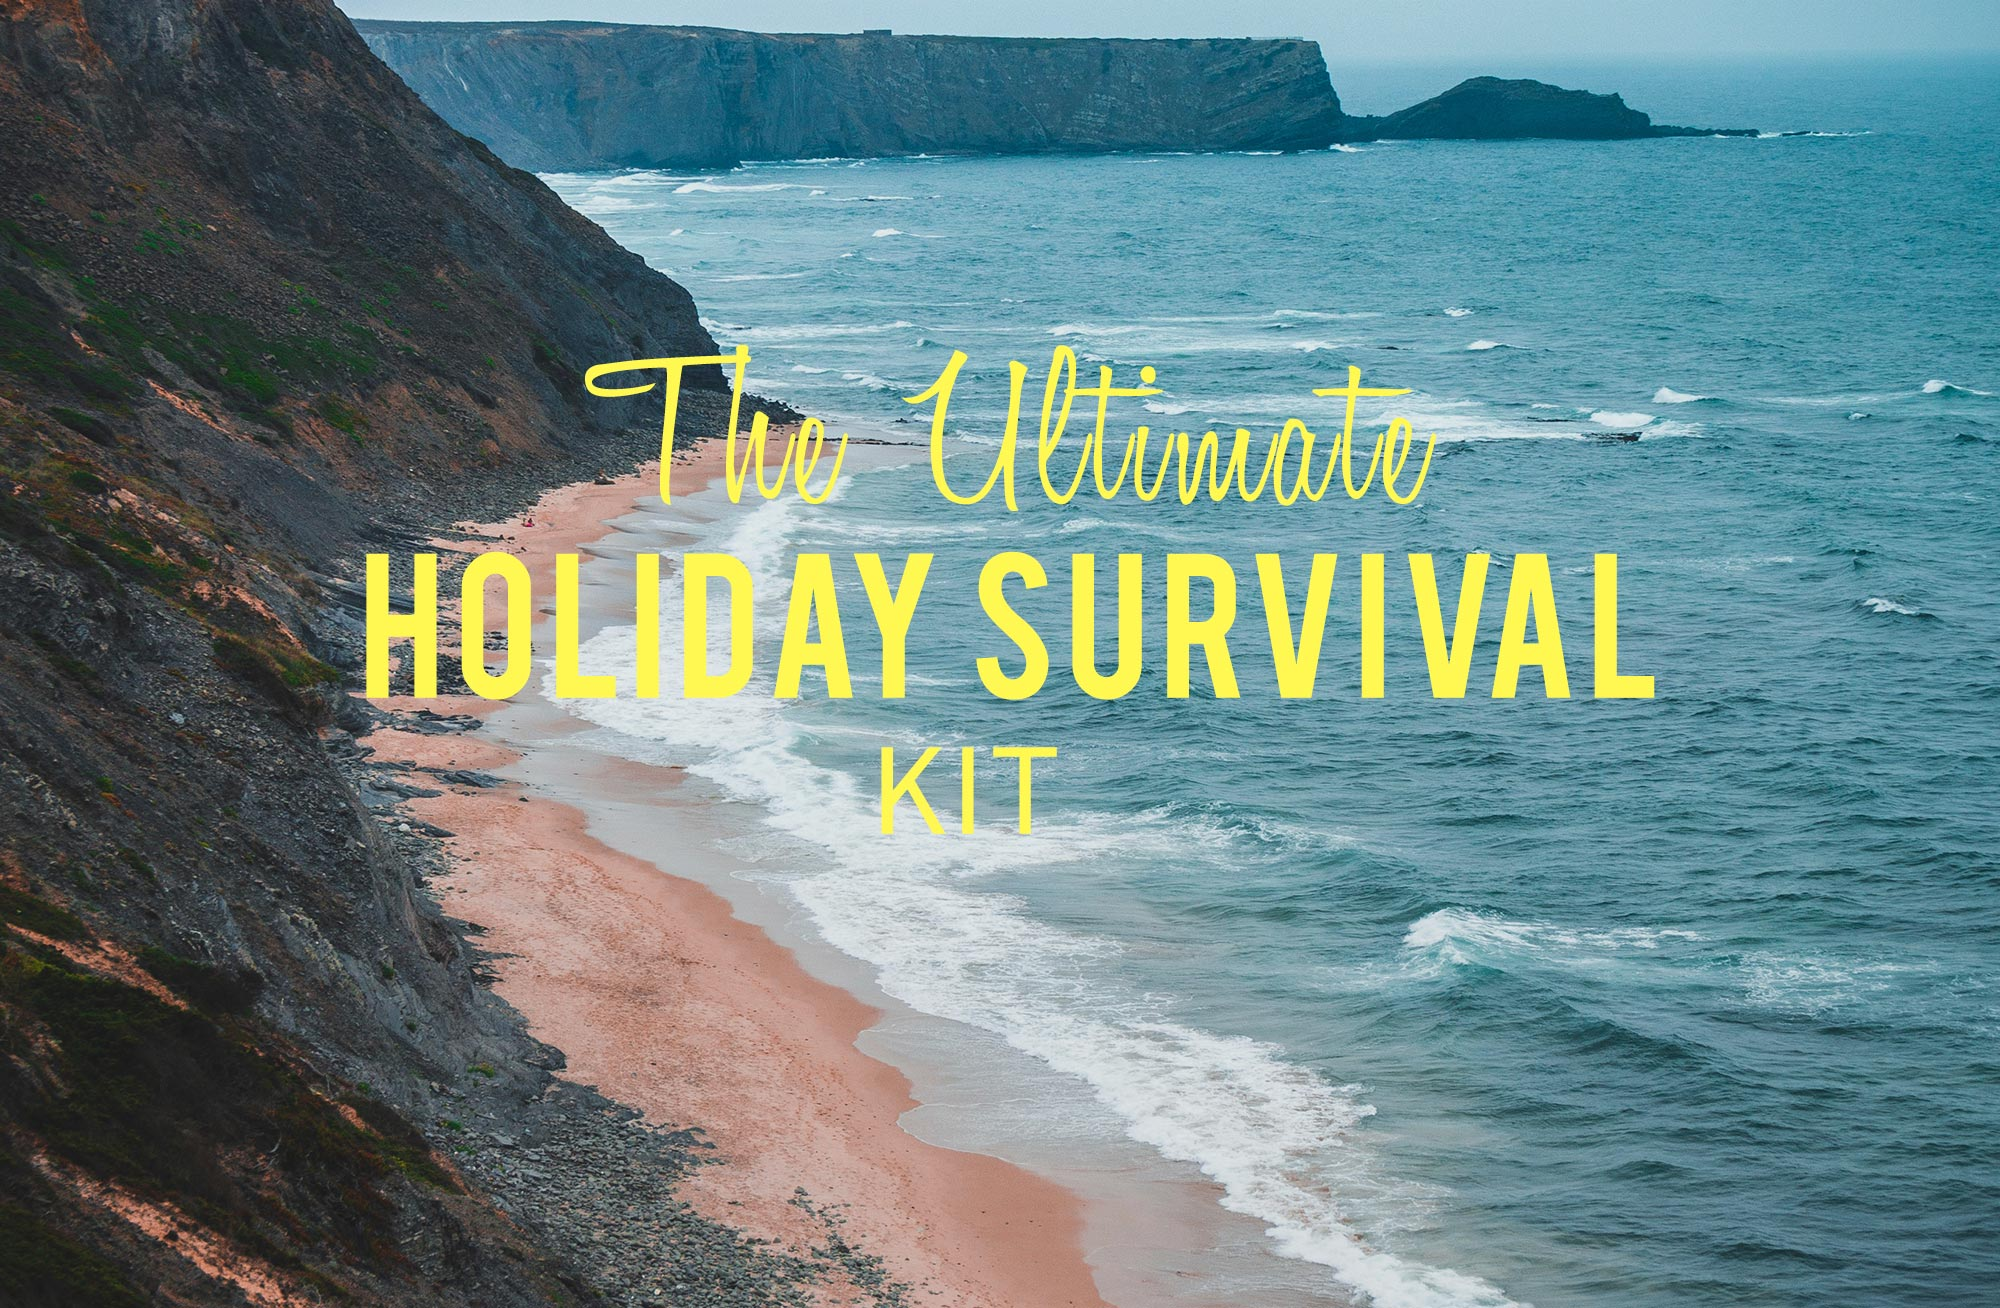 Tips for wellbeing on holiday